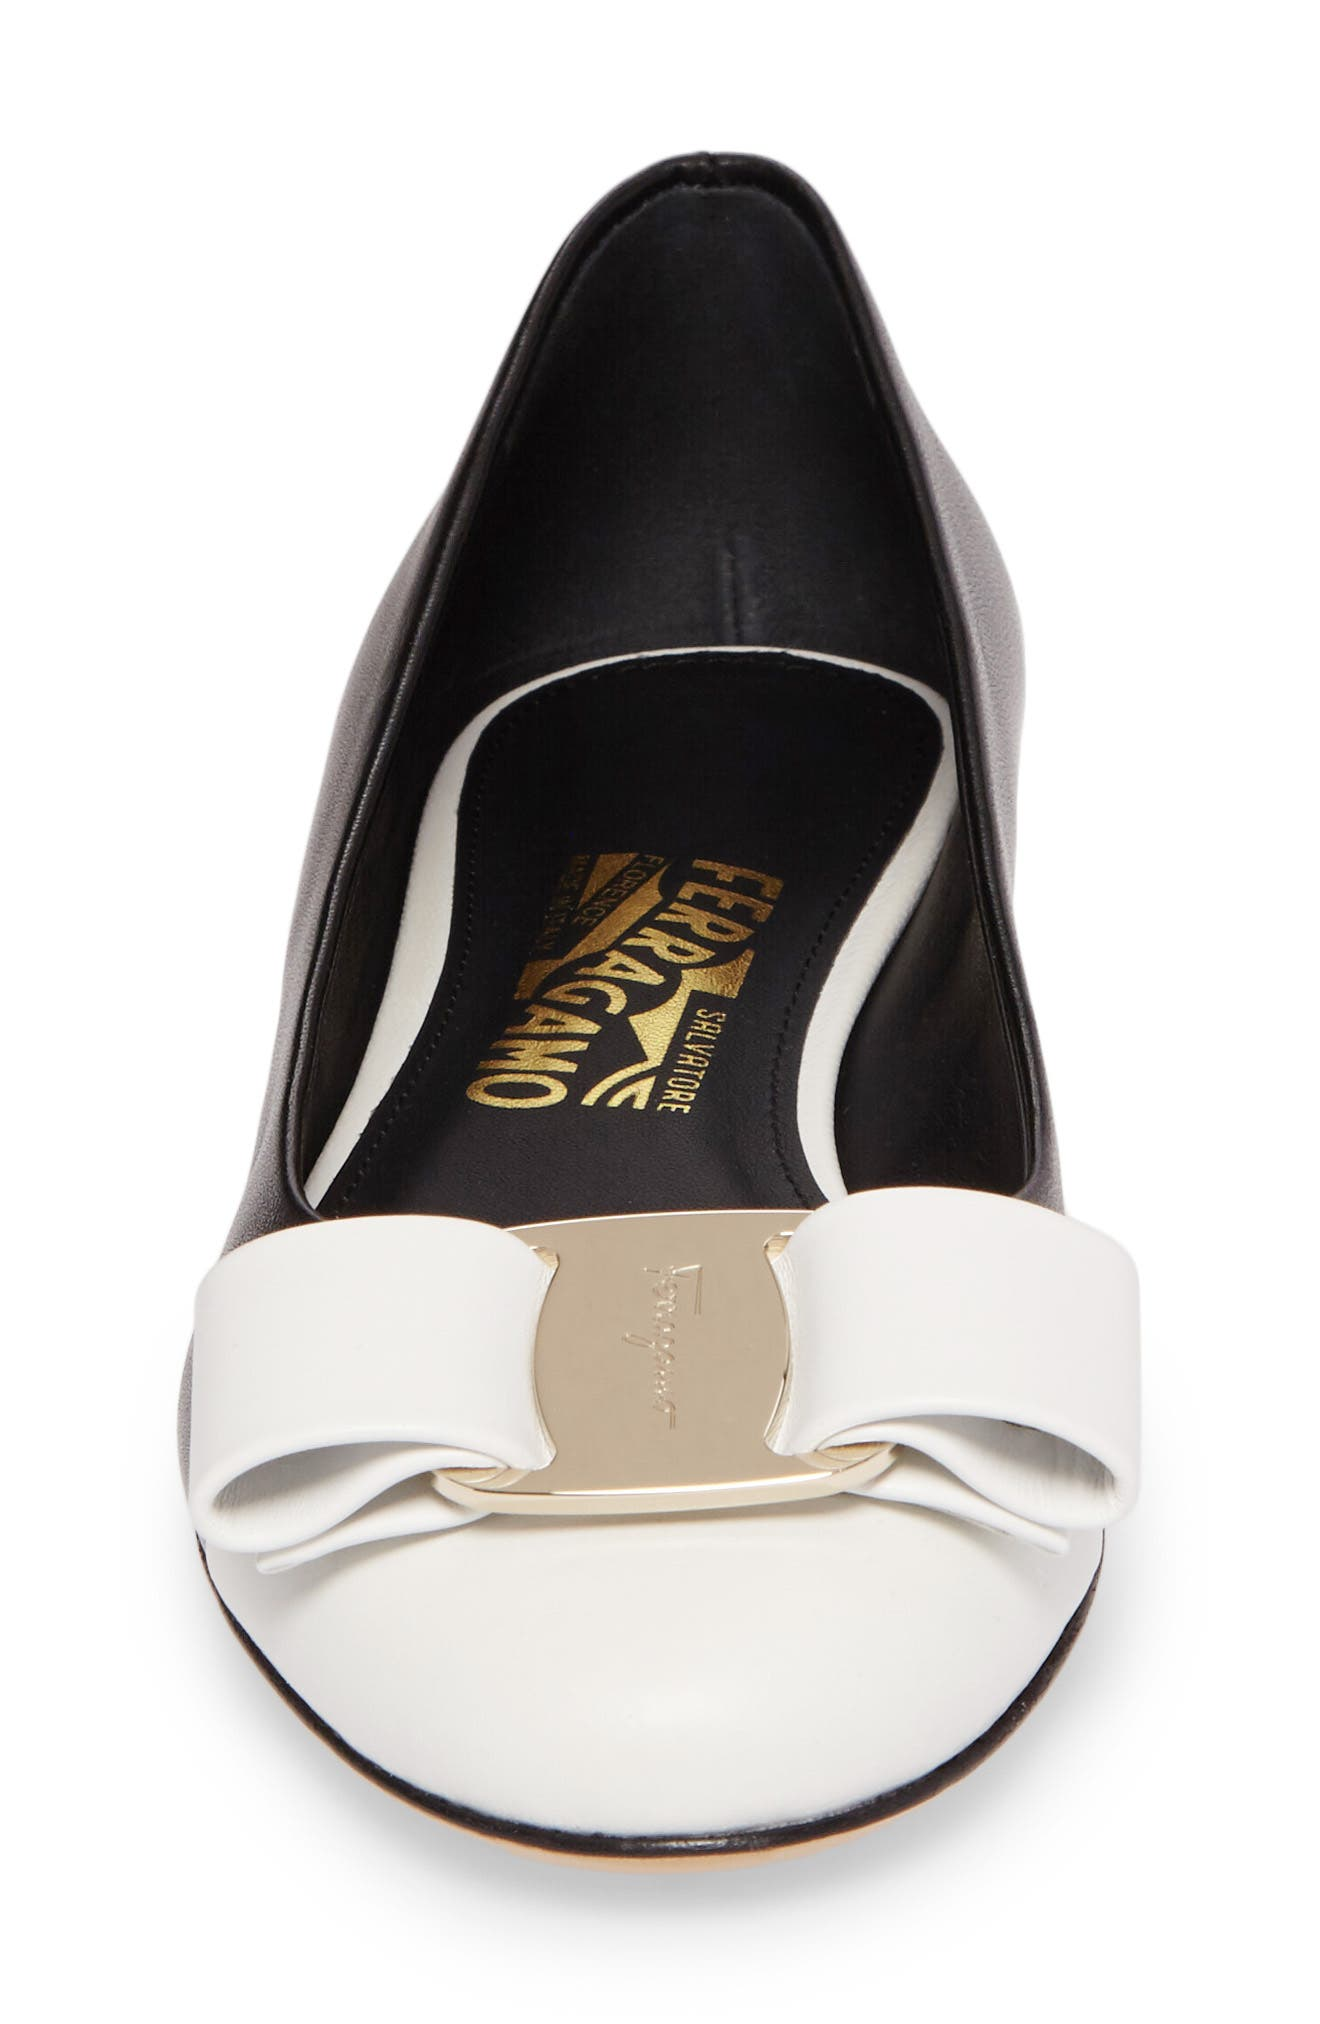 Varina Bow Flat,                             Alternate thumbnail 4, color,                             Black/ White